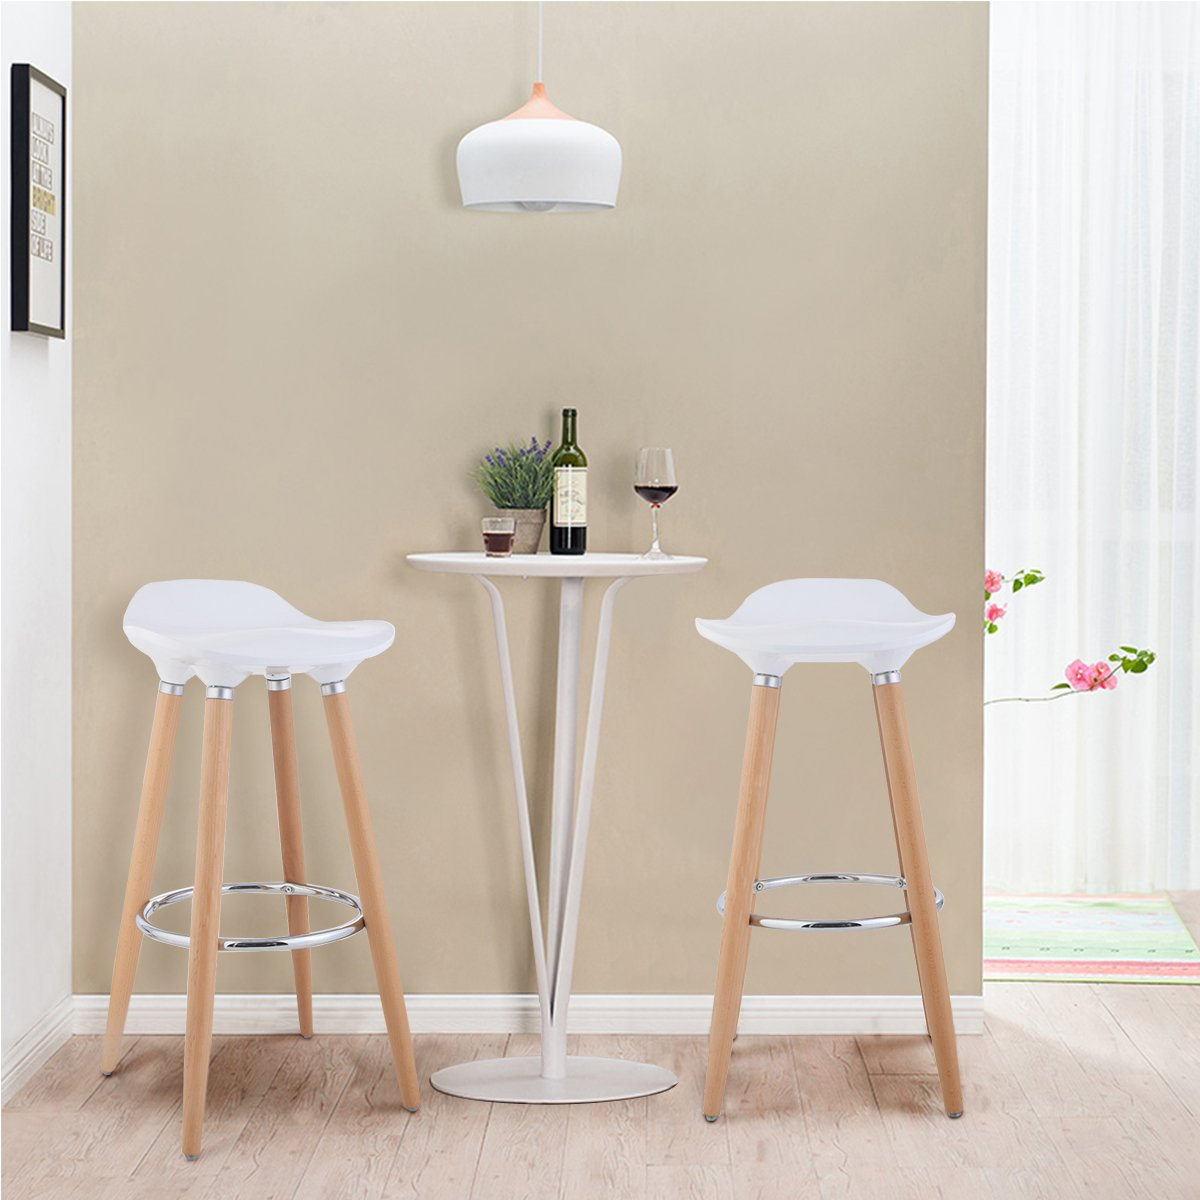 COSTWAY Set of 2 Barstools Modern Counter Height Bistro Pub Side Chairs with Wooden Legs White by COSTWAY